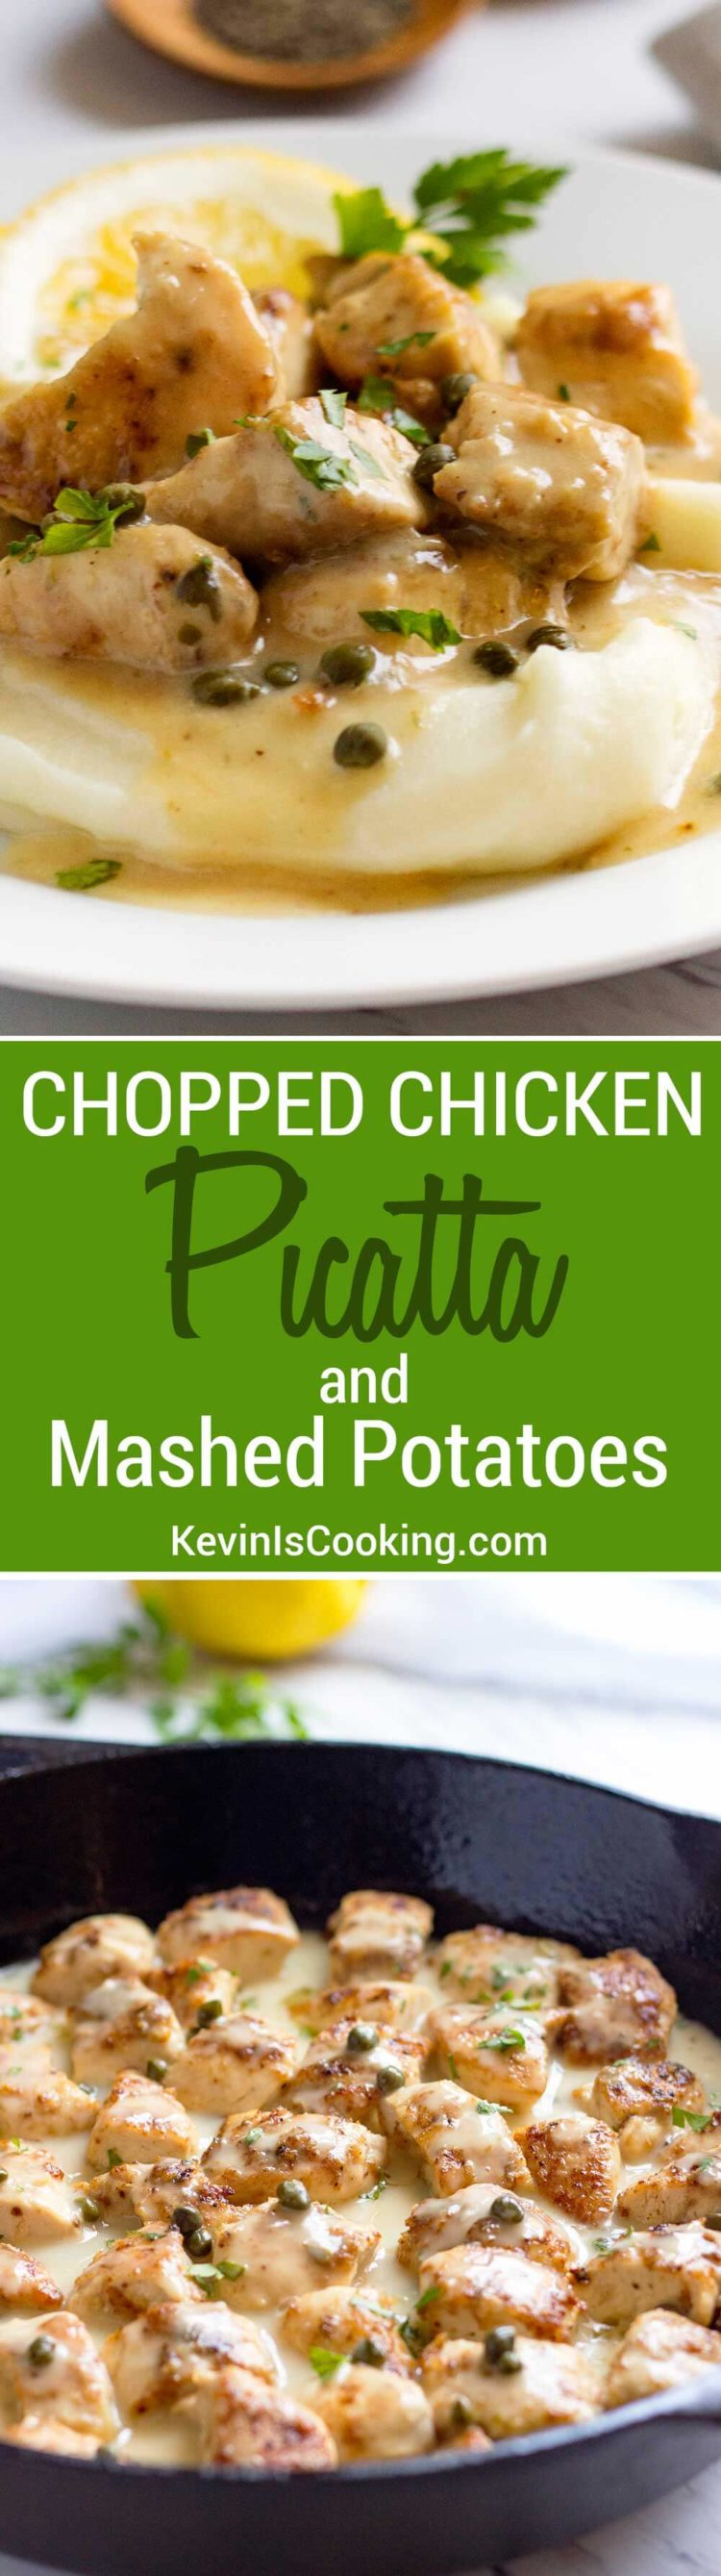 Chopped Chicken Piccata - This house favorite uses chopped chicken that gets browned, drenched in a easy, lemony caper pan sauce and tops mashed potatoes for a perfect comfort dinner.